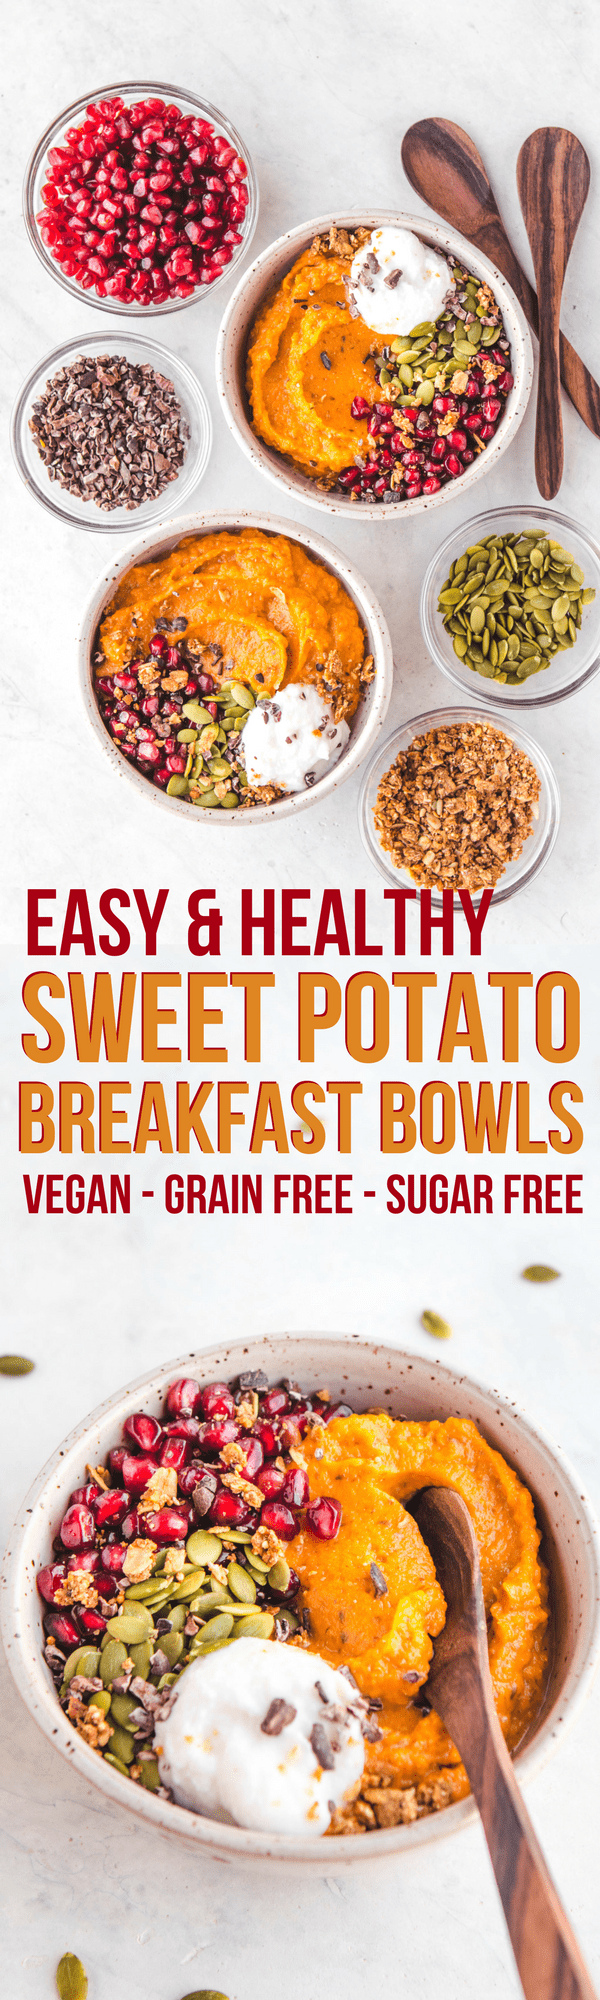 These Sweet Potato Breakfast Bowls are a healthy and easy vegan breakfast #vegan #grainfree #sugarfree #breakfast #sweetpotato #glutenfree